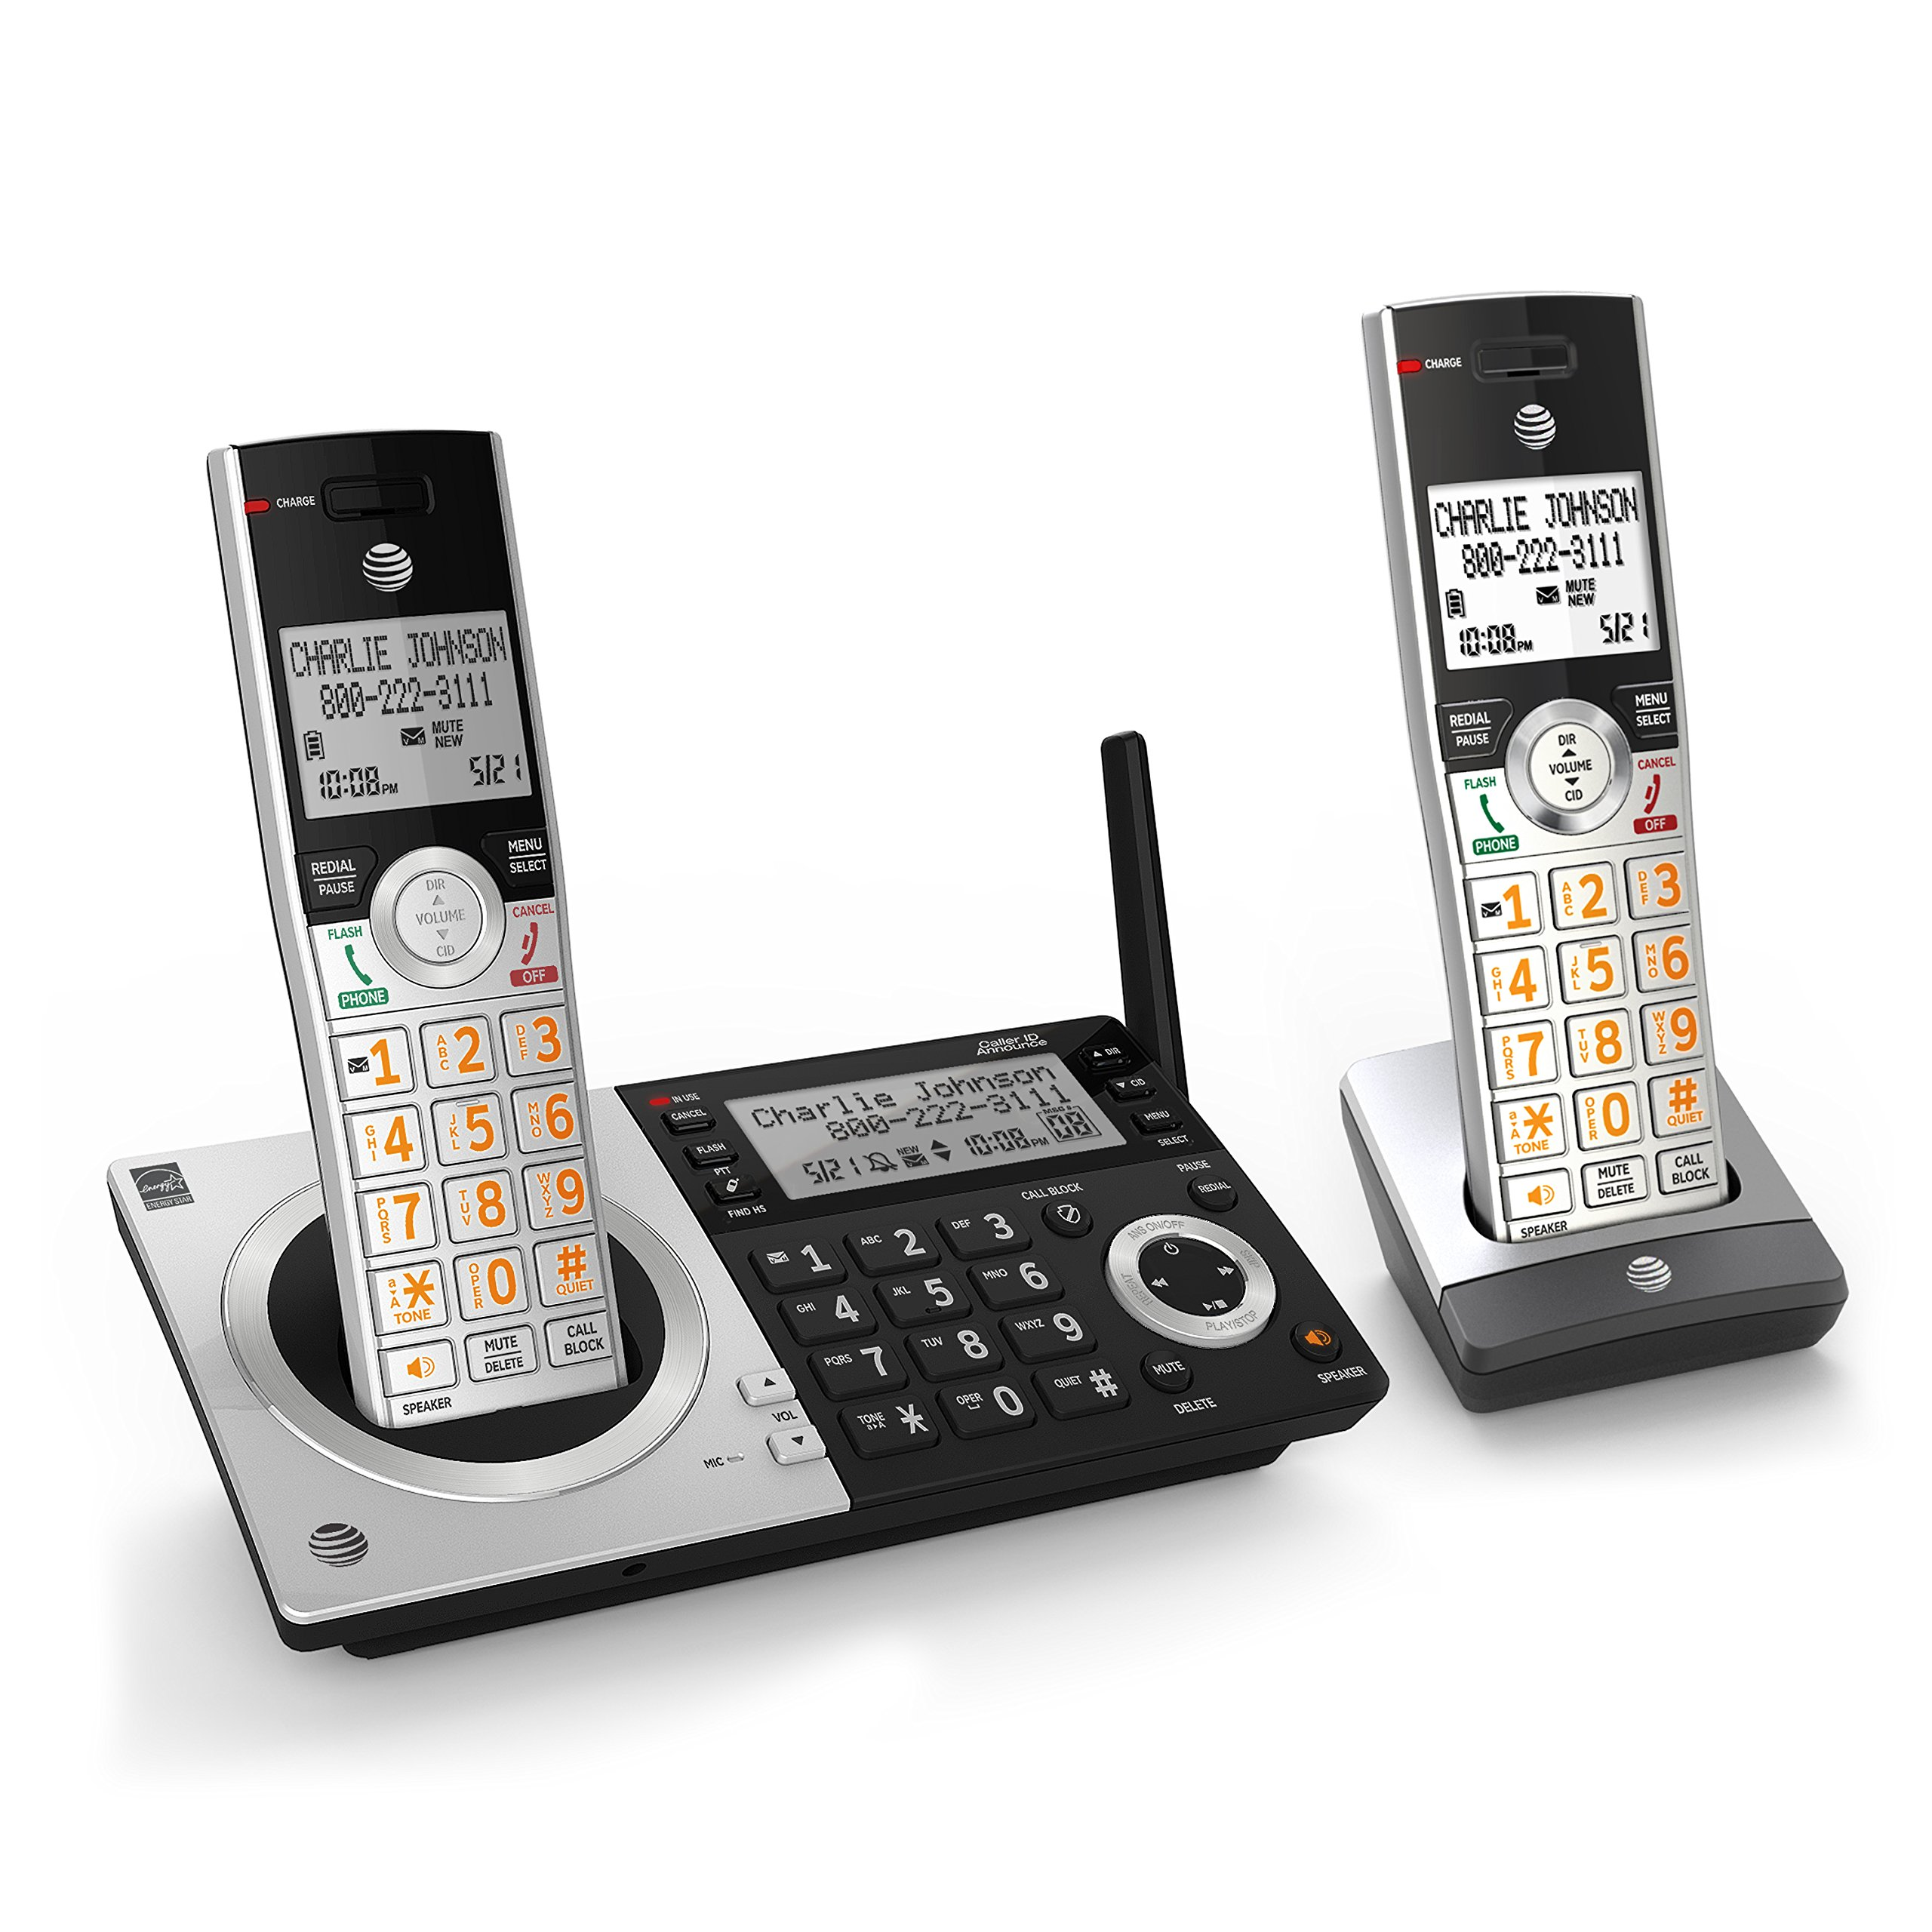 AT&T CL83207 DECT 6.0 Expandable Cordless Phone with Smart Call Blocker, Silver/Black with 2 Handsets by AT&T